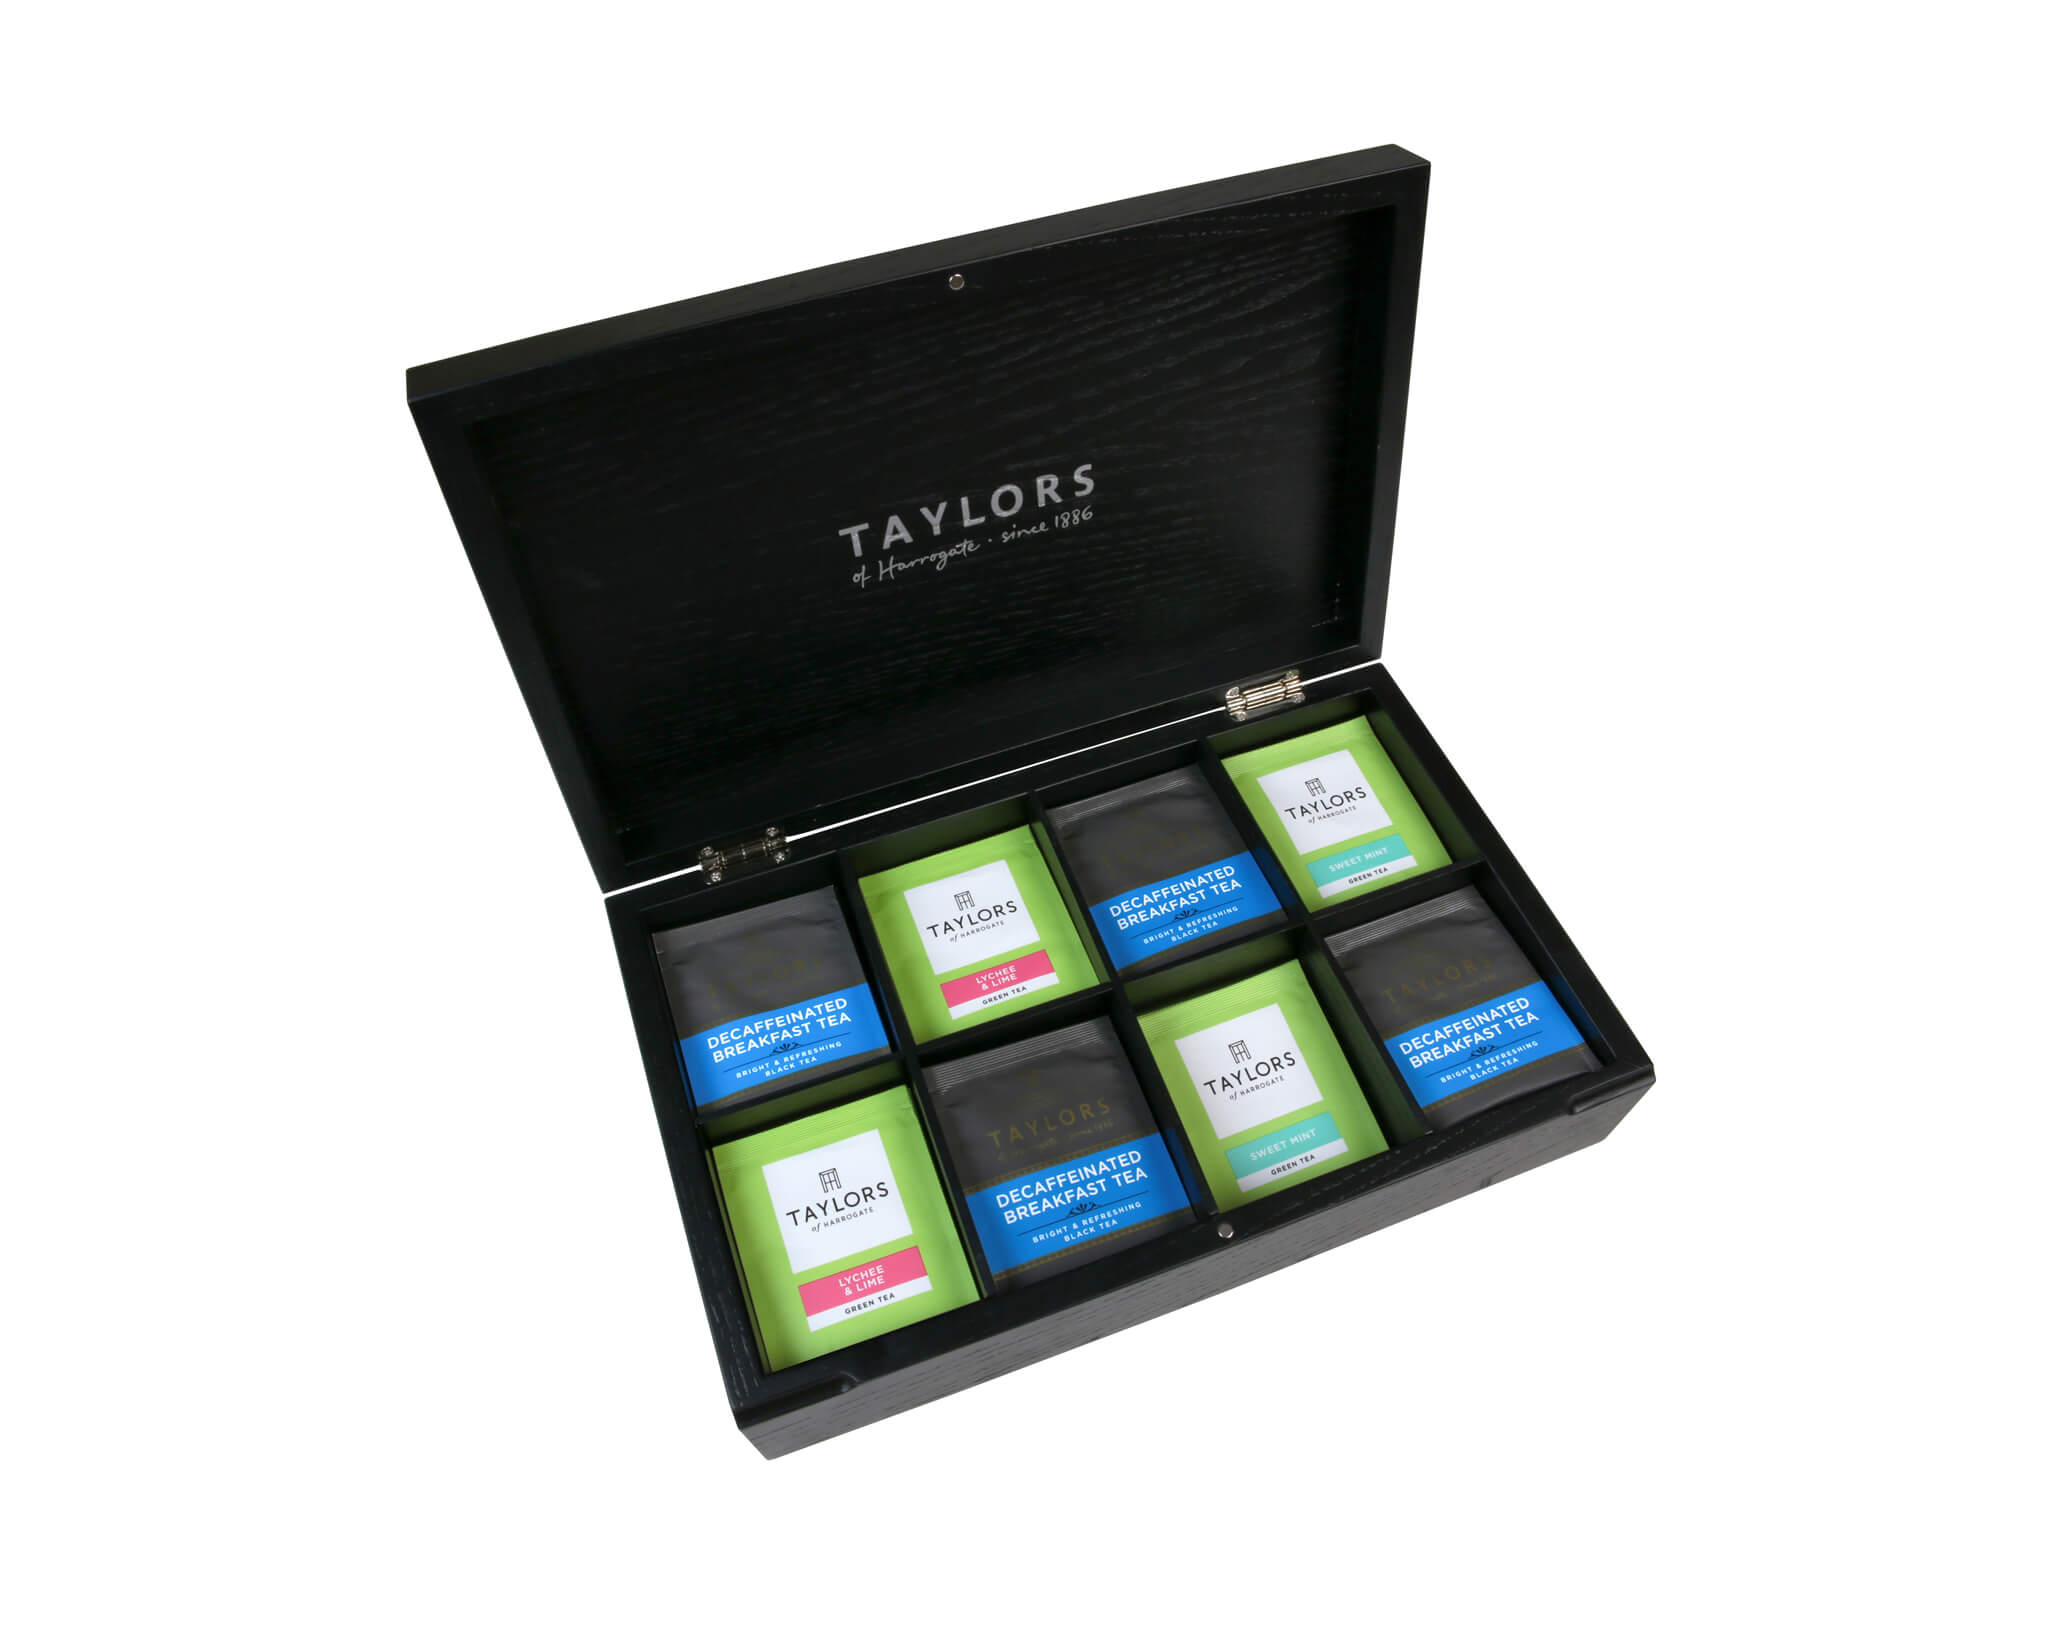 Teabox Manufacturer for Taylors of Harrogate